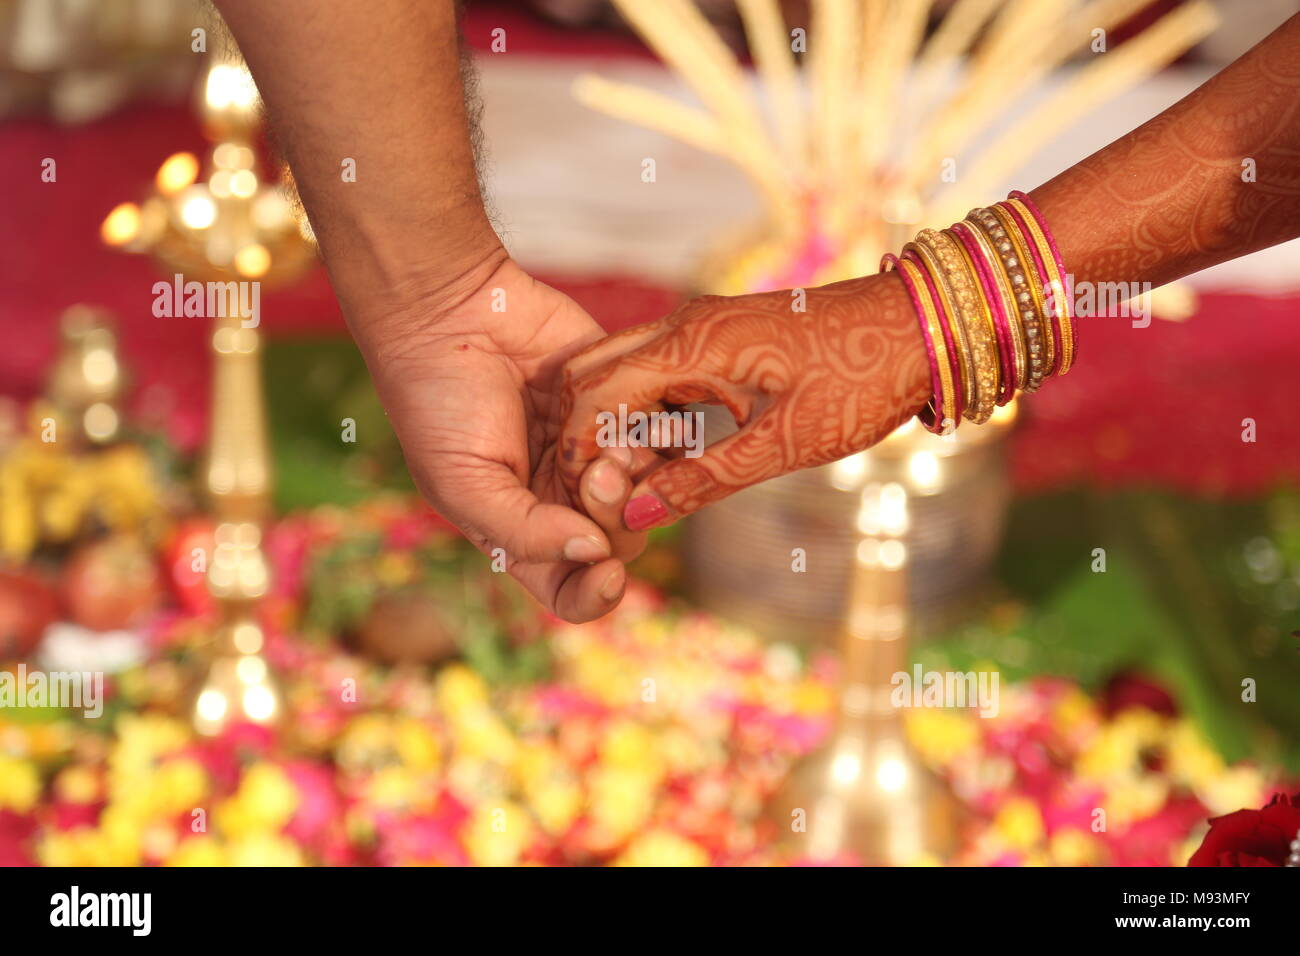 Hindu Marriage Ritual Stock Photos Hindu Marriage Ritual